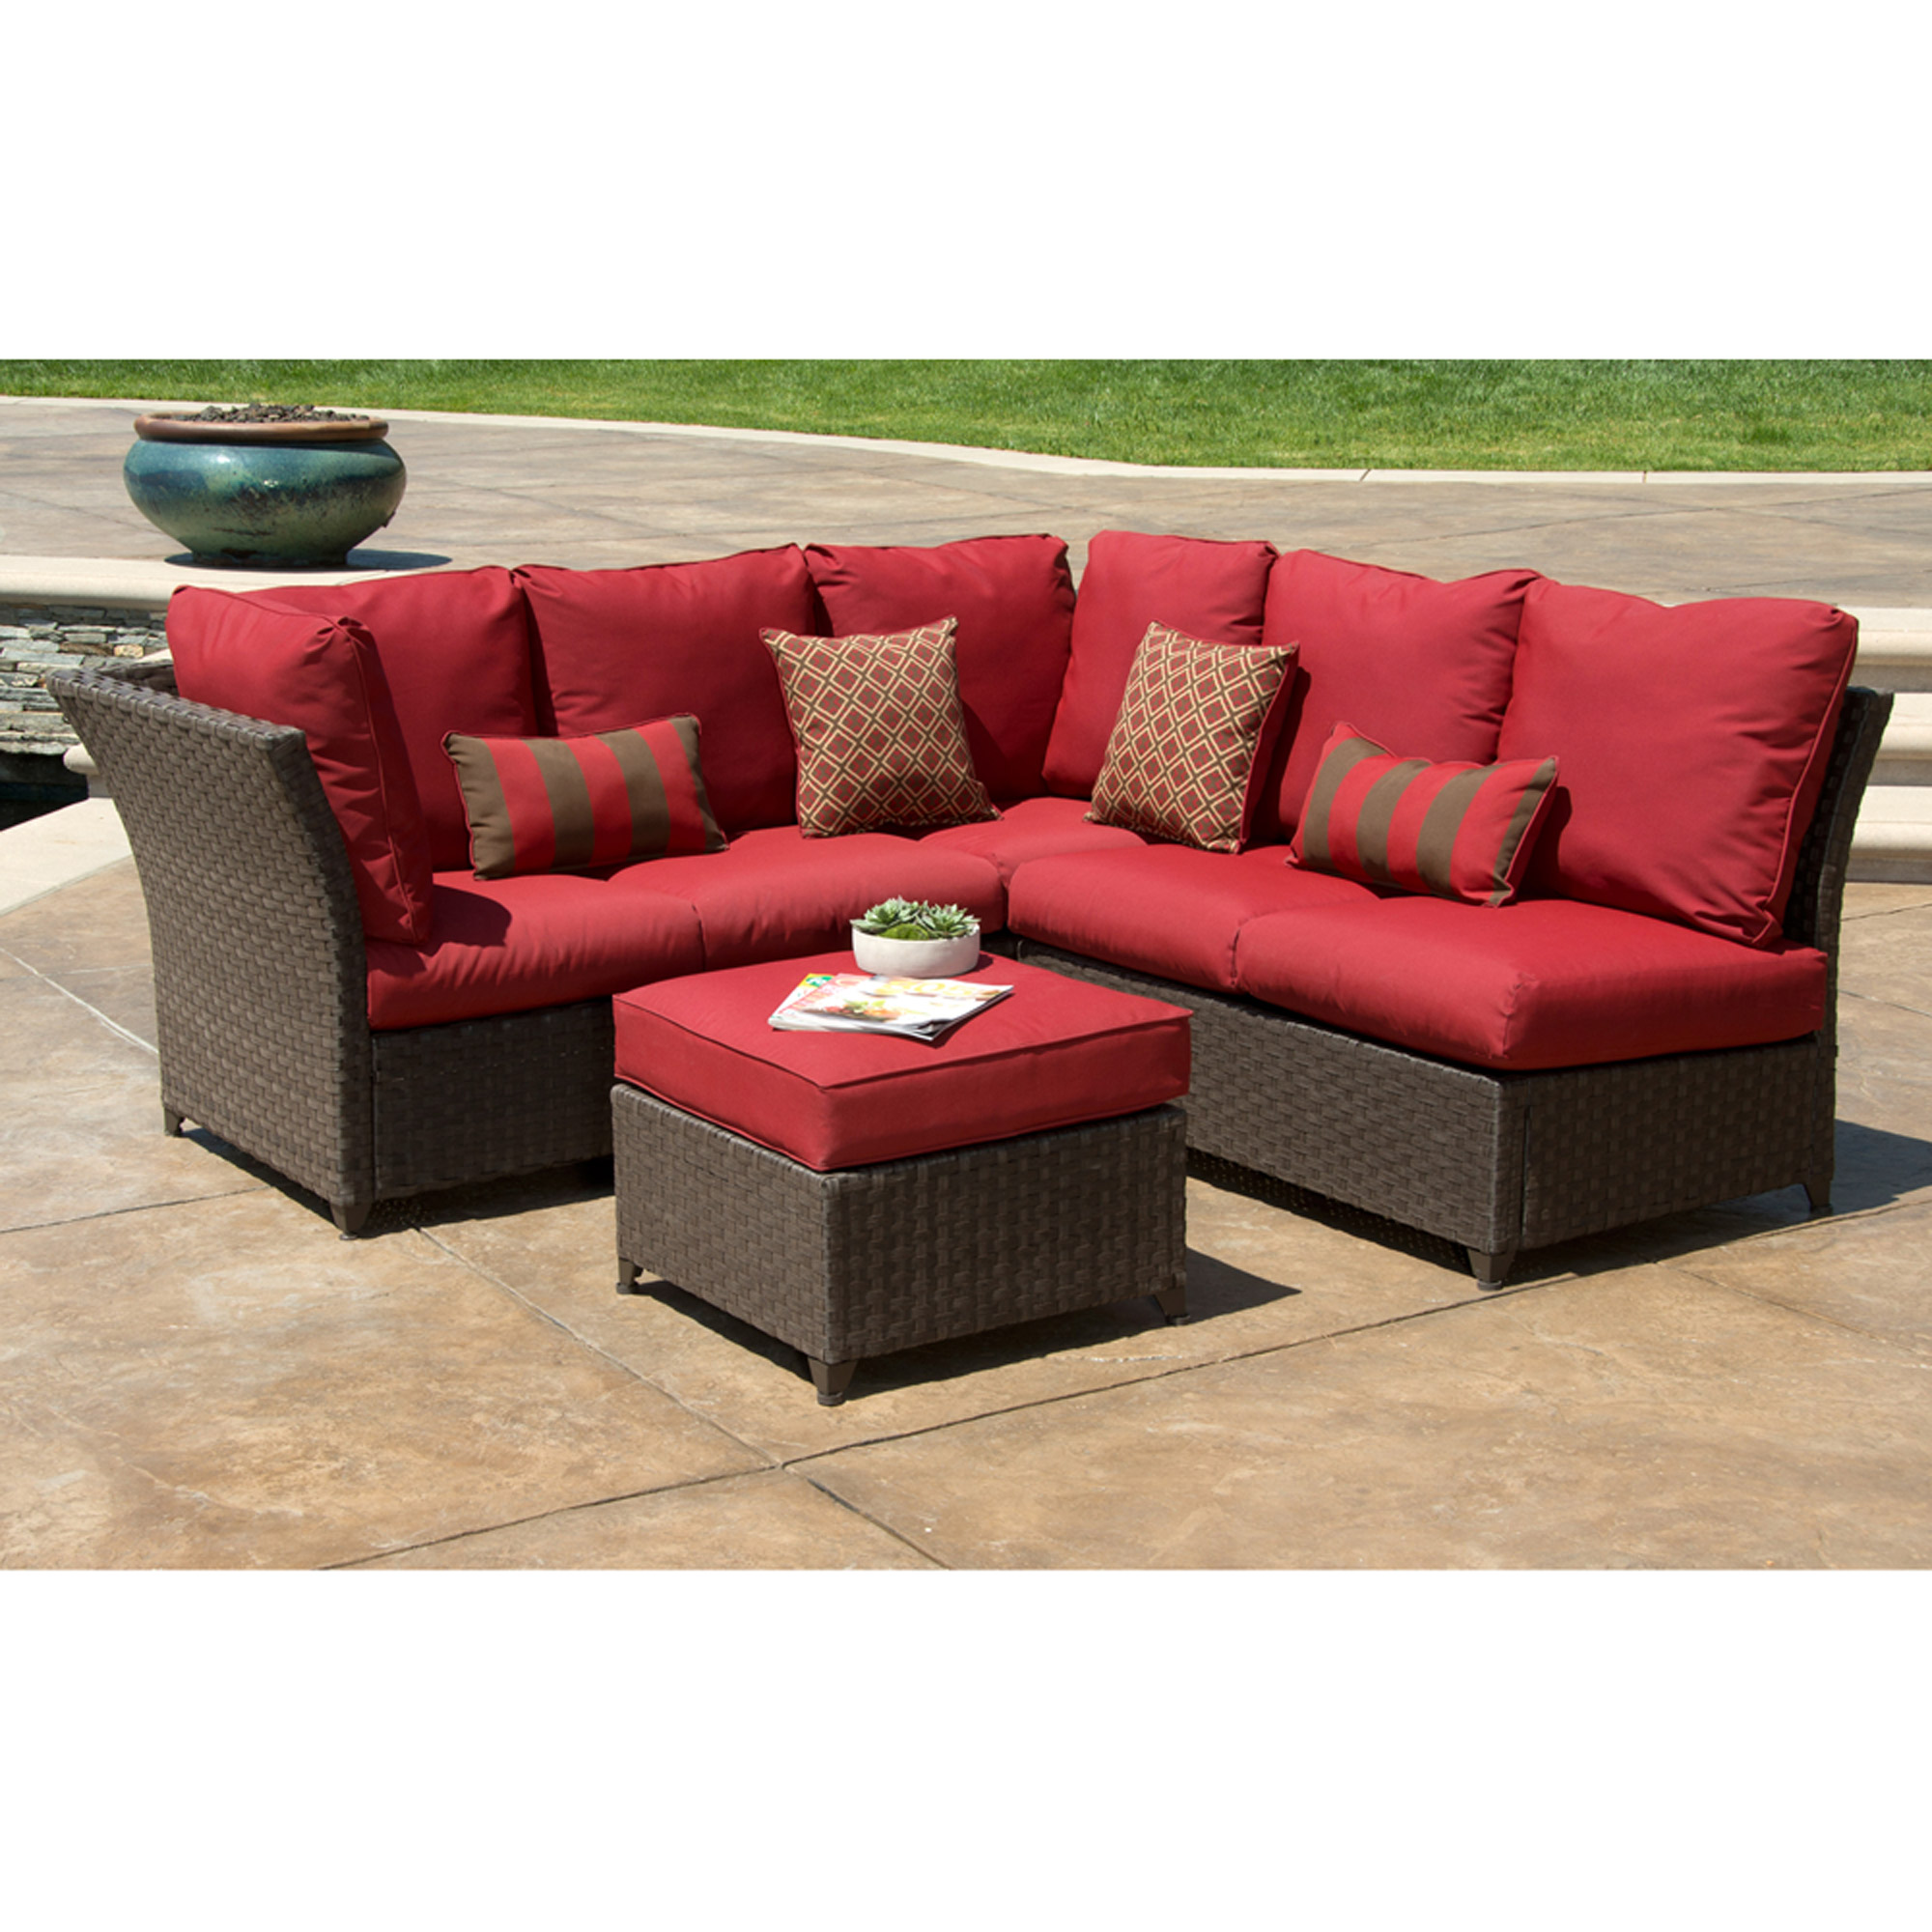 better homes and gardens rushreed 3-piece outdoor sectional sofa set, red, ARACTQV